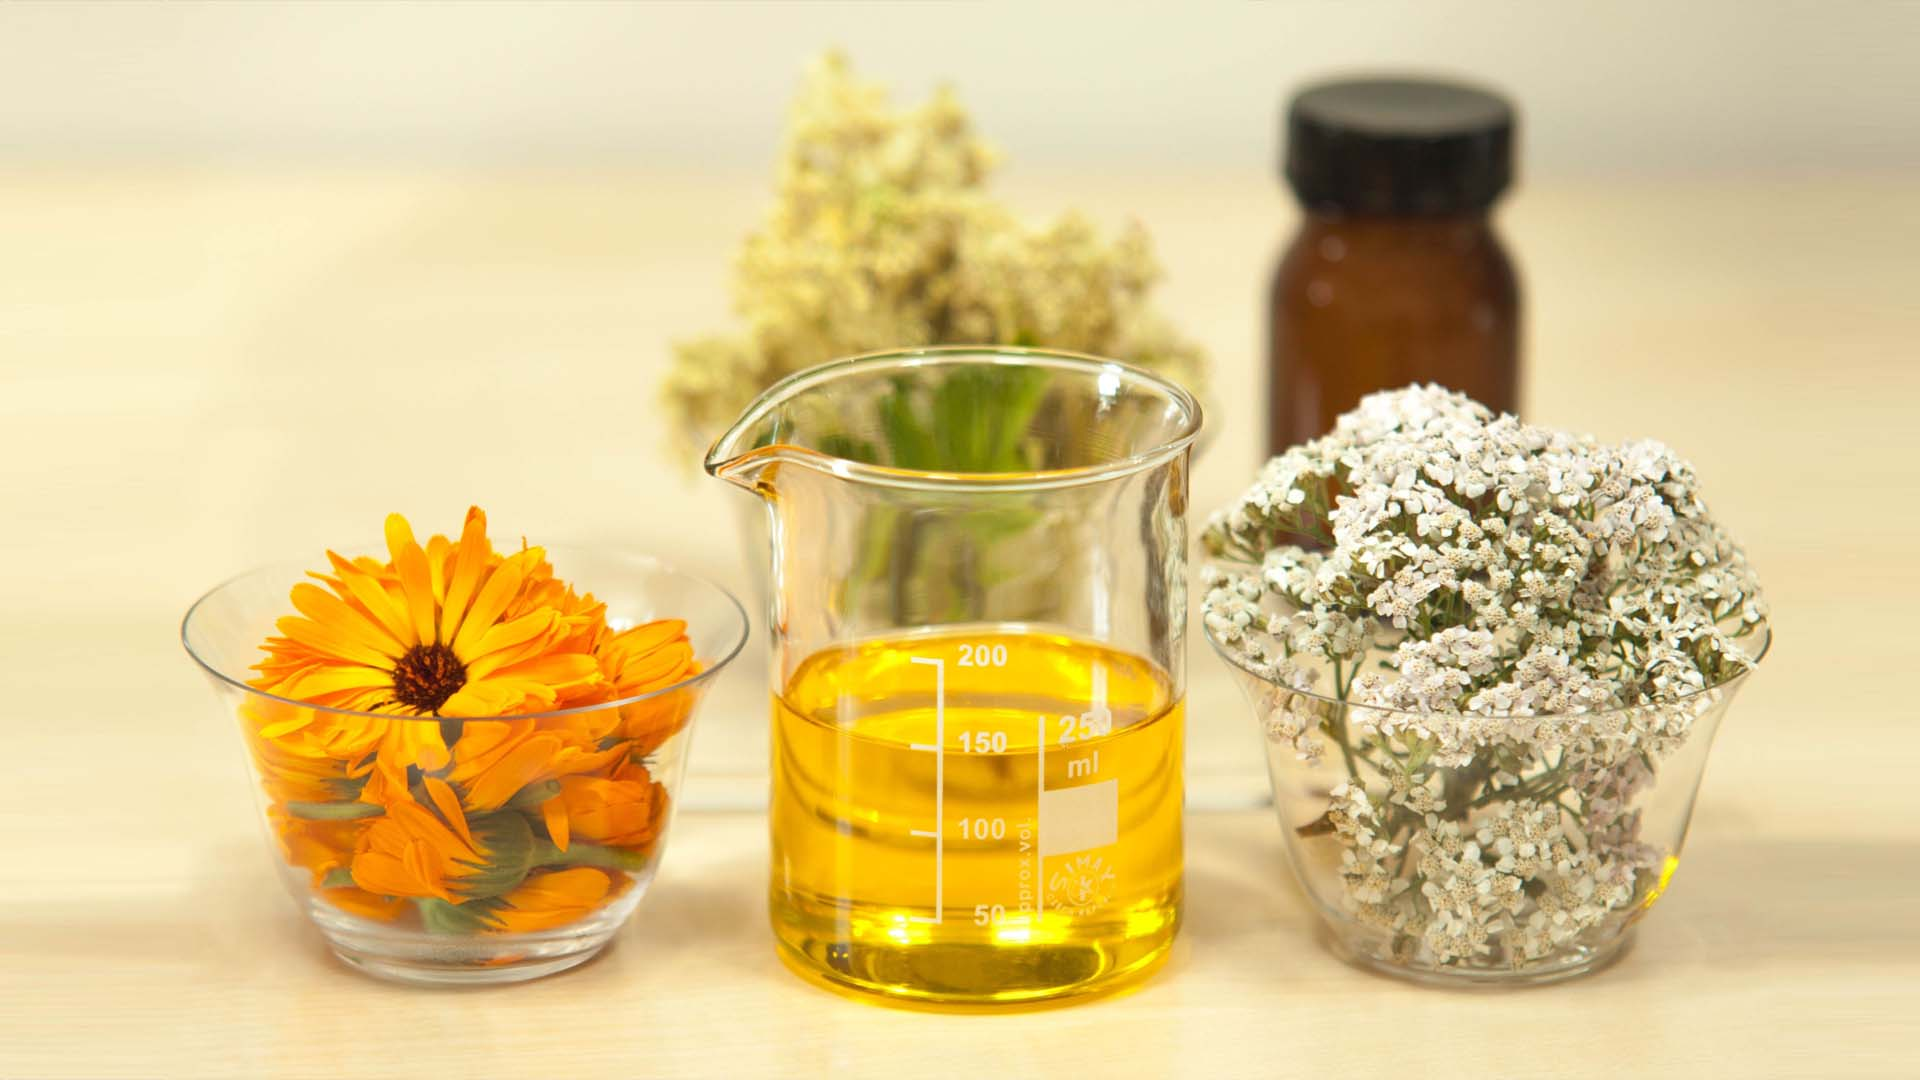 Yummy Mummy Emporium and Apothecary - Bringing the Wisdom of Mother Nature to Life